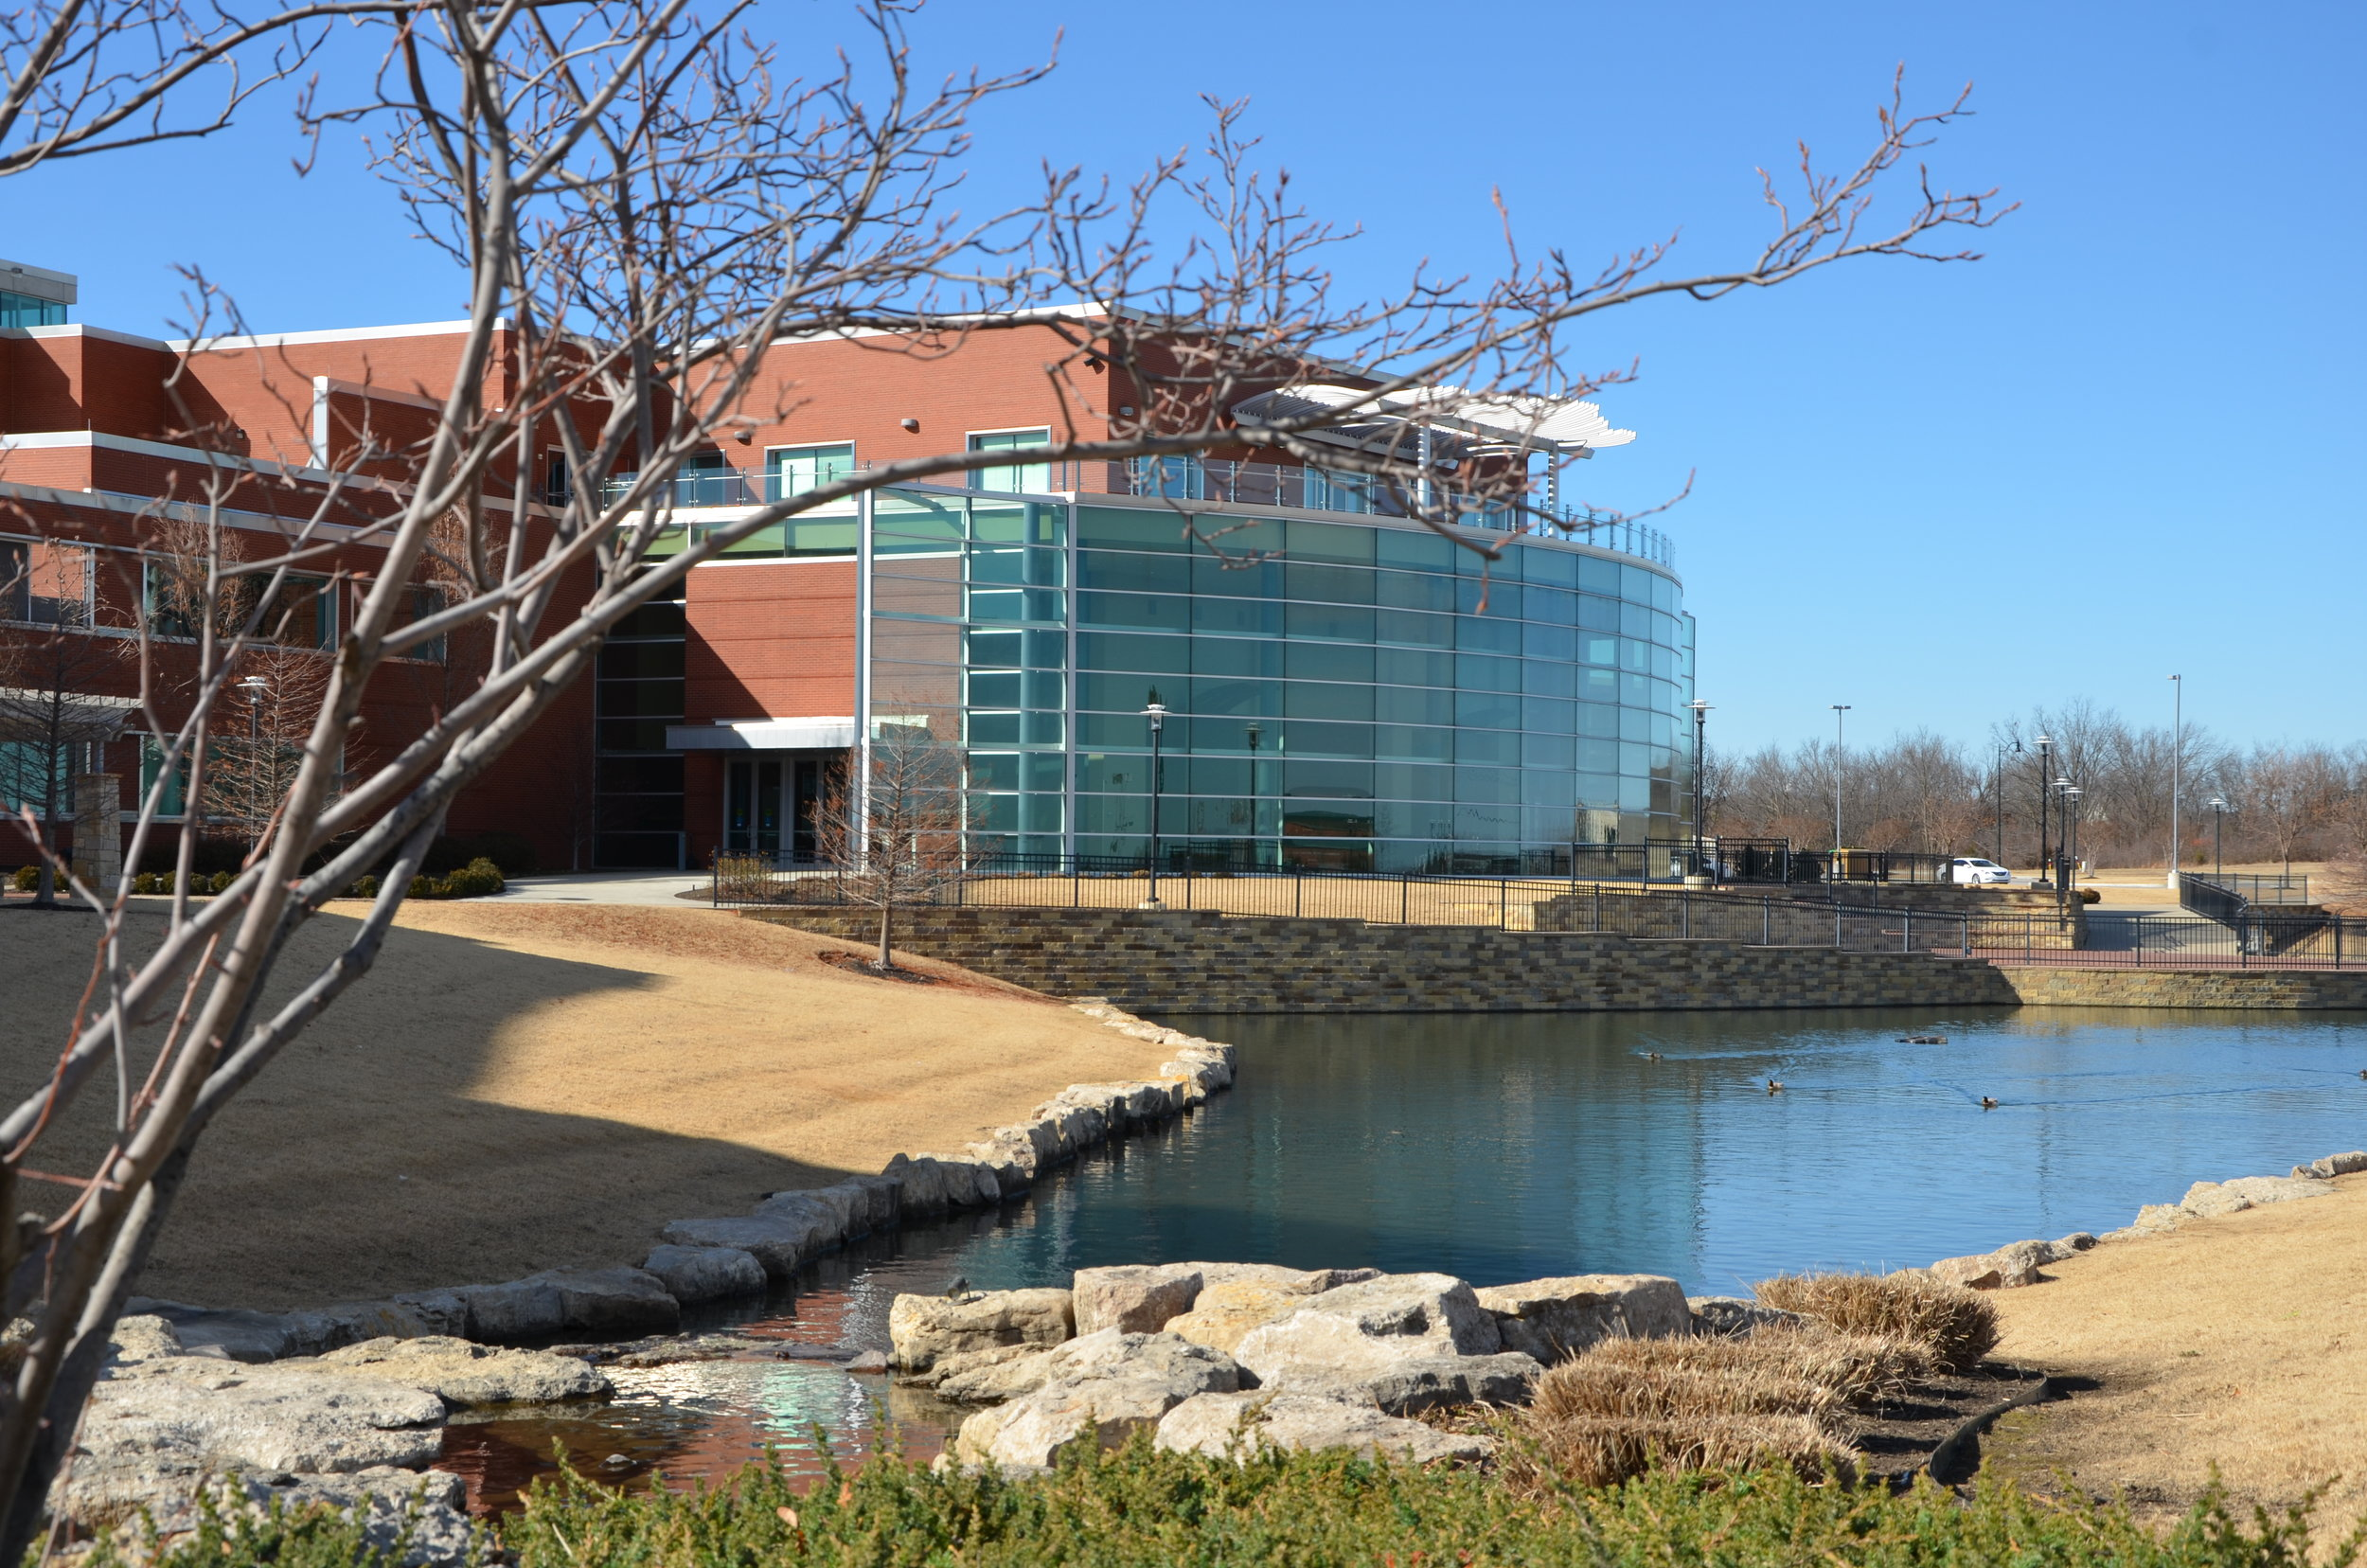 Community: Glenpool Conference Center and City Hall